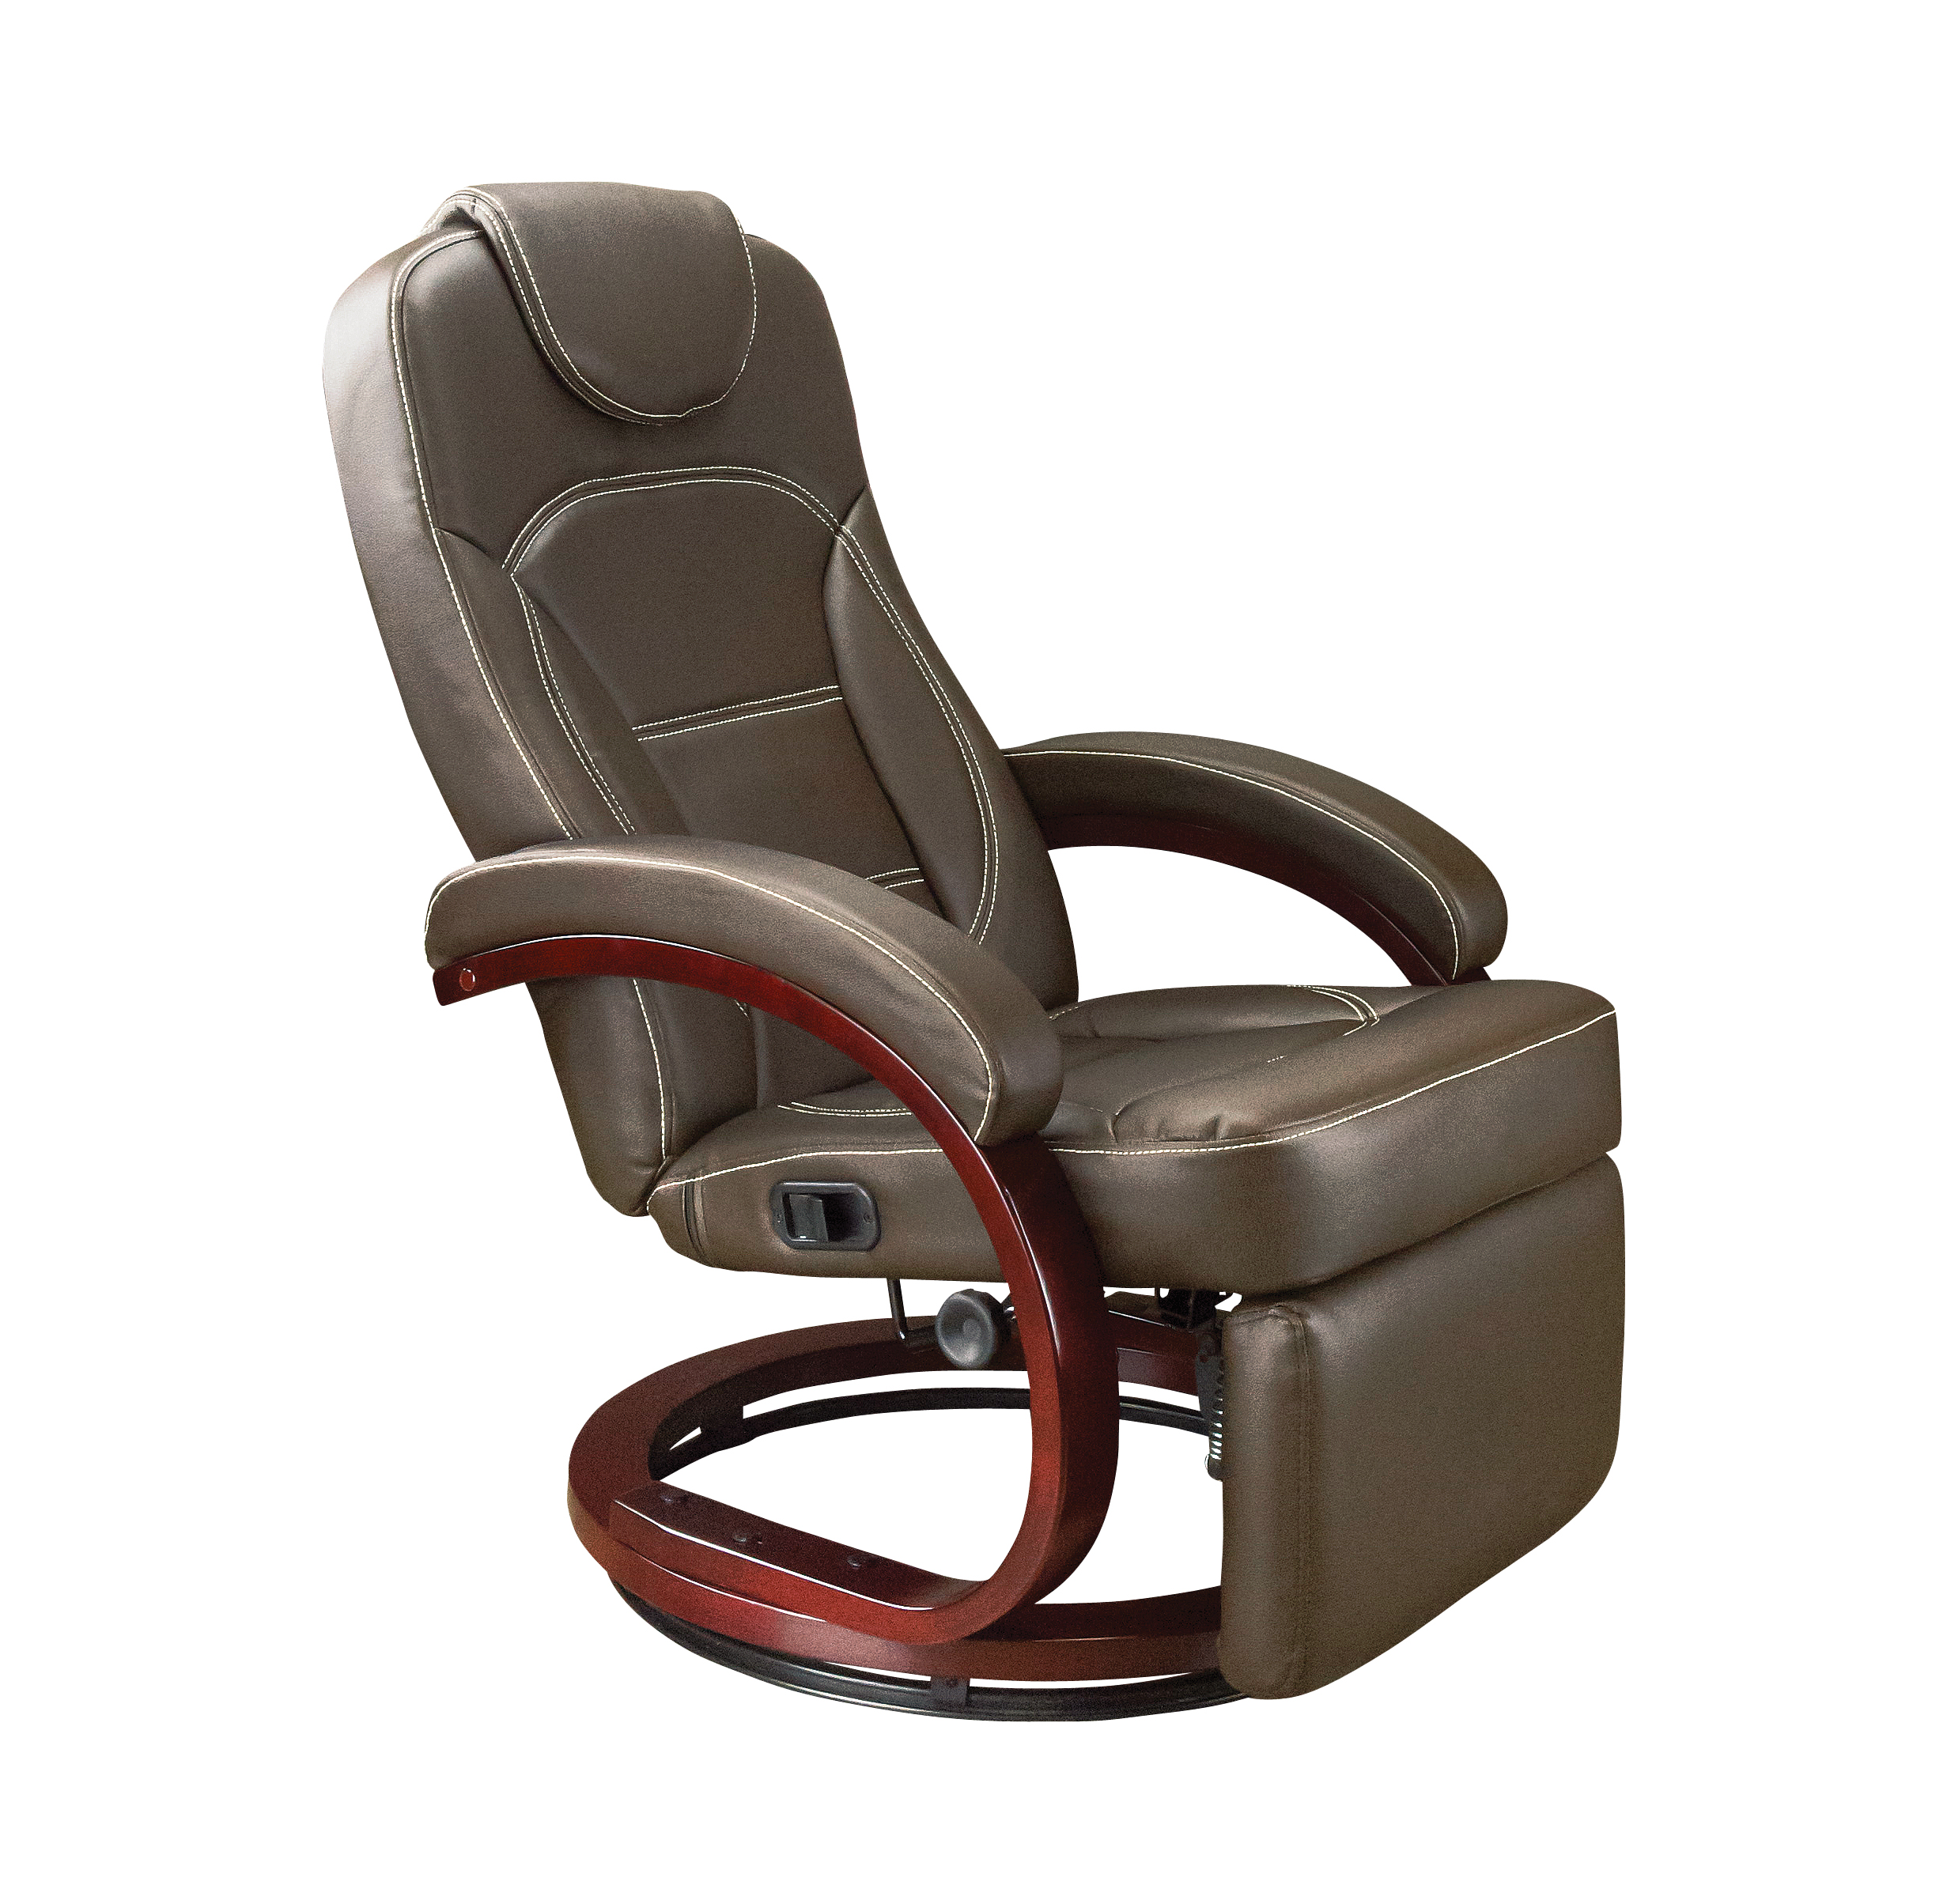 Merveilleux ... XL Euro Recliner Chair With Footrest U2013 Brookwood Chestnut. 426798 ...